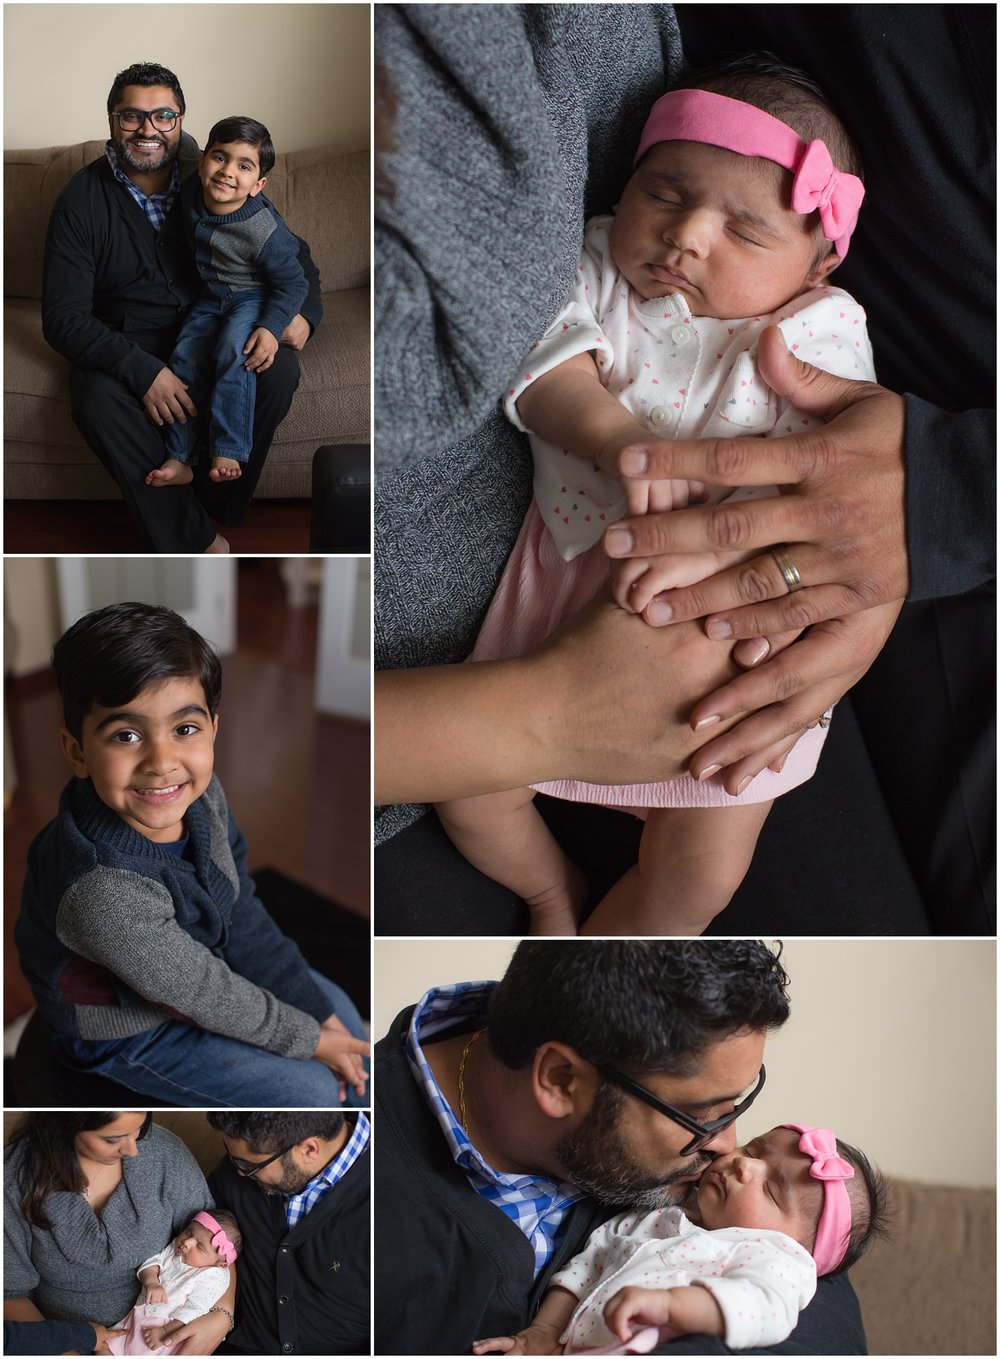 Amazing Day Photographer - Langley Newborn Photographer - Lifestyle Newborn Photographer (2).jpg